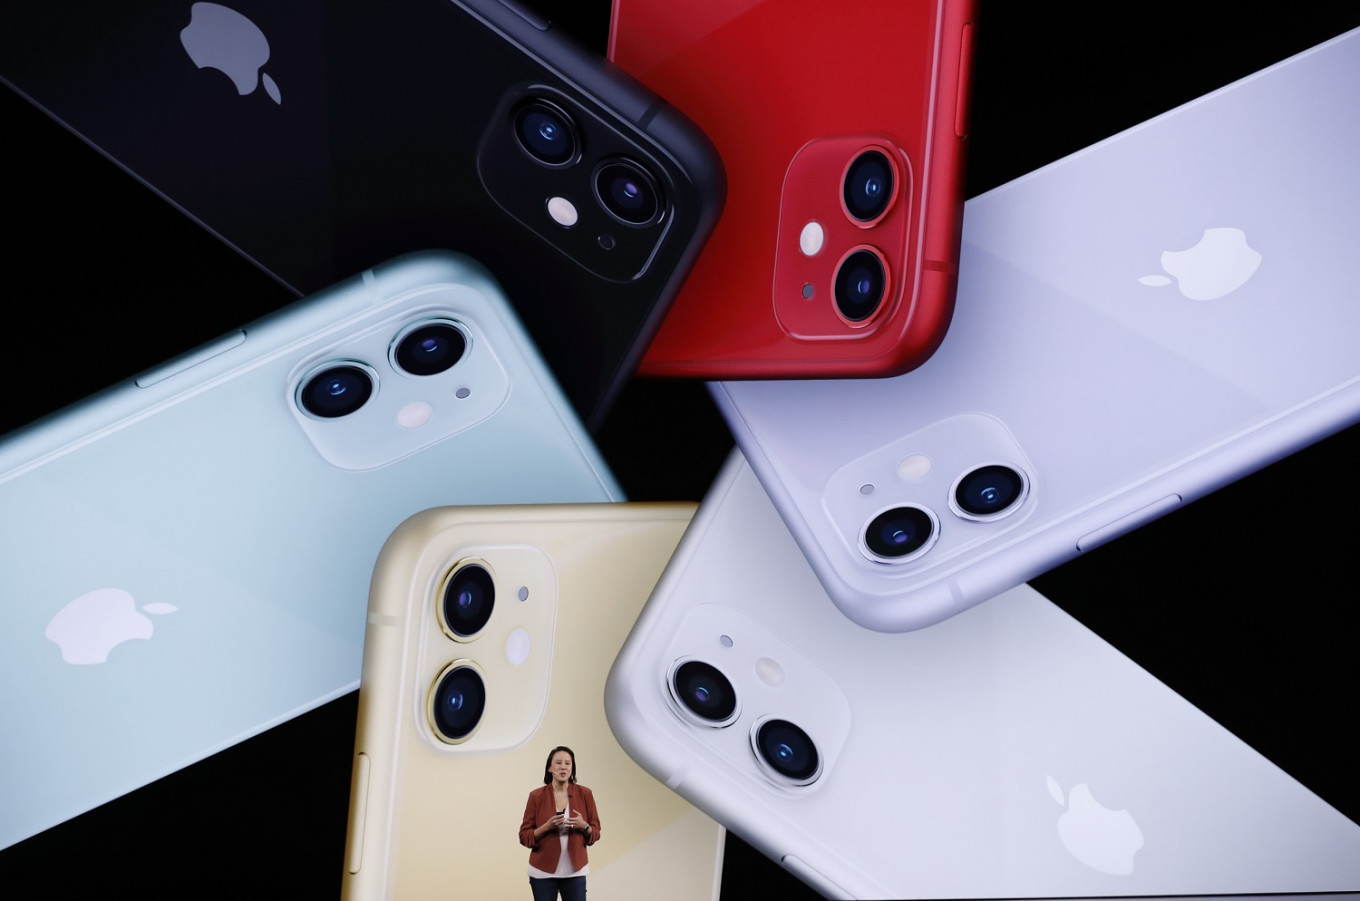 Apple takes smartphone sales crown from Samsung